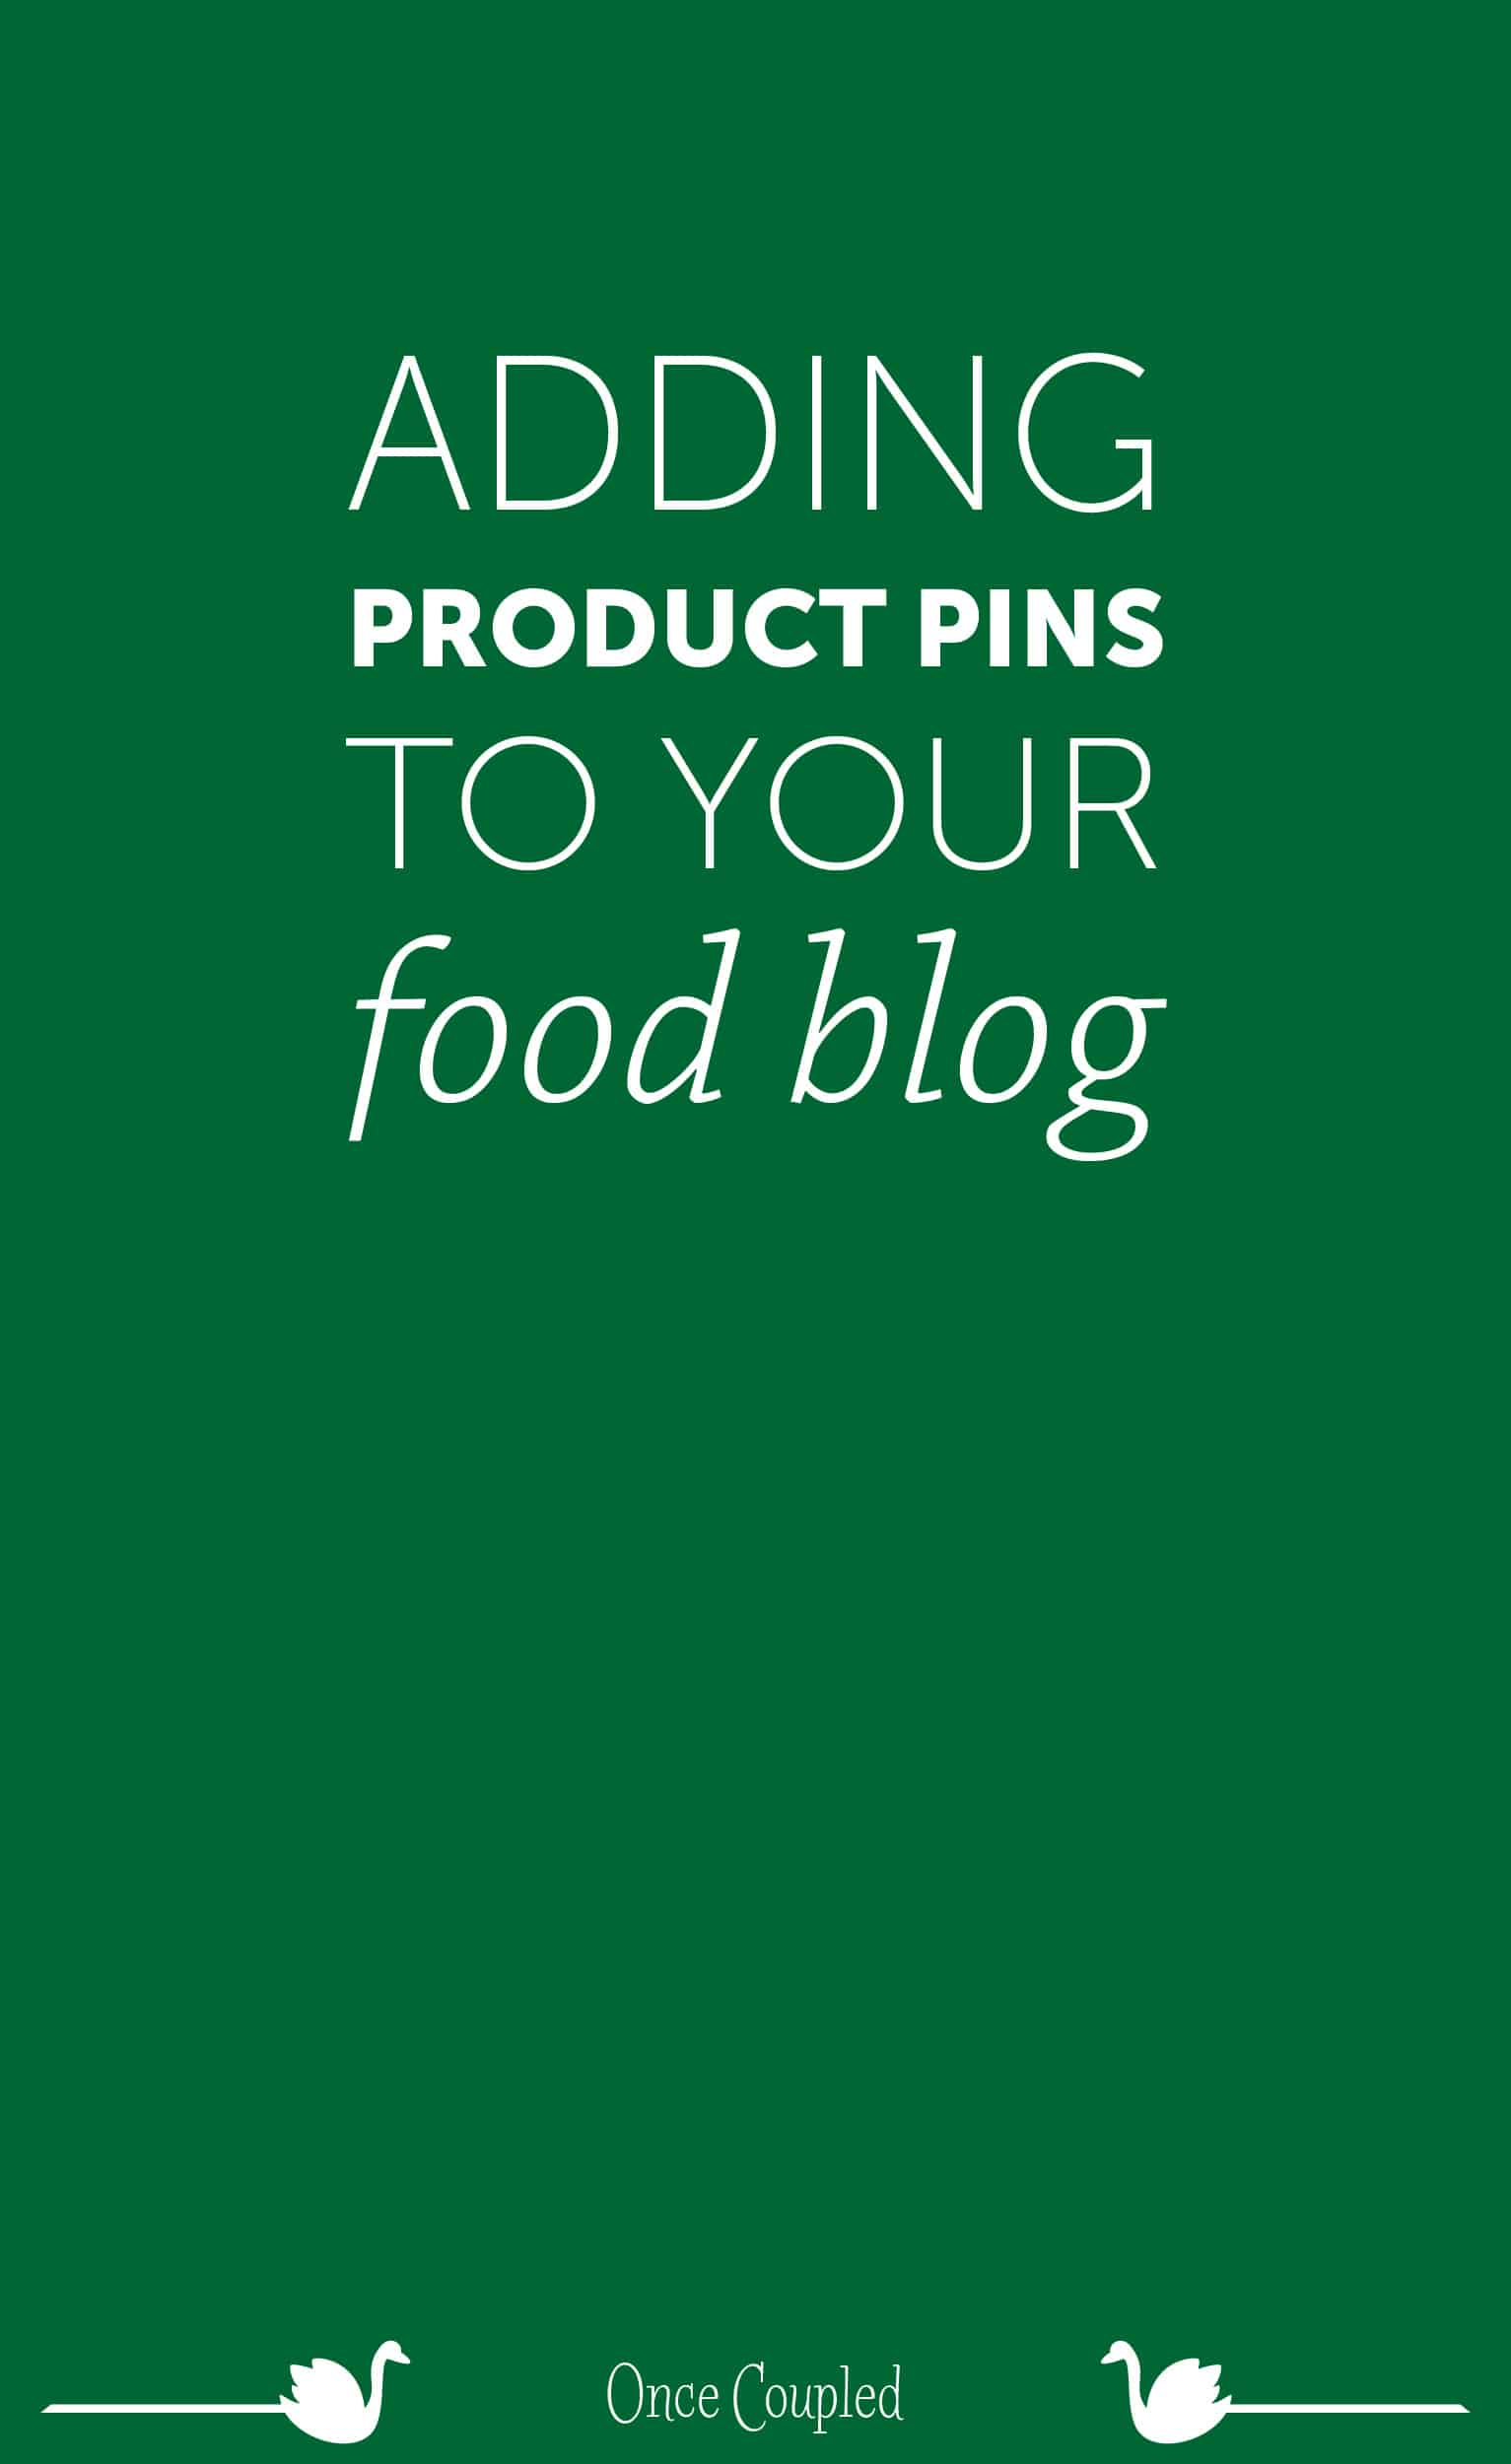 Adding Rich Product Pins to Your Food Blog